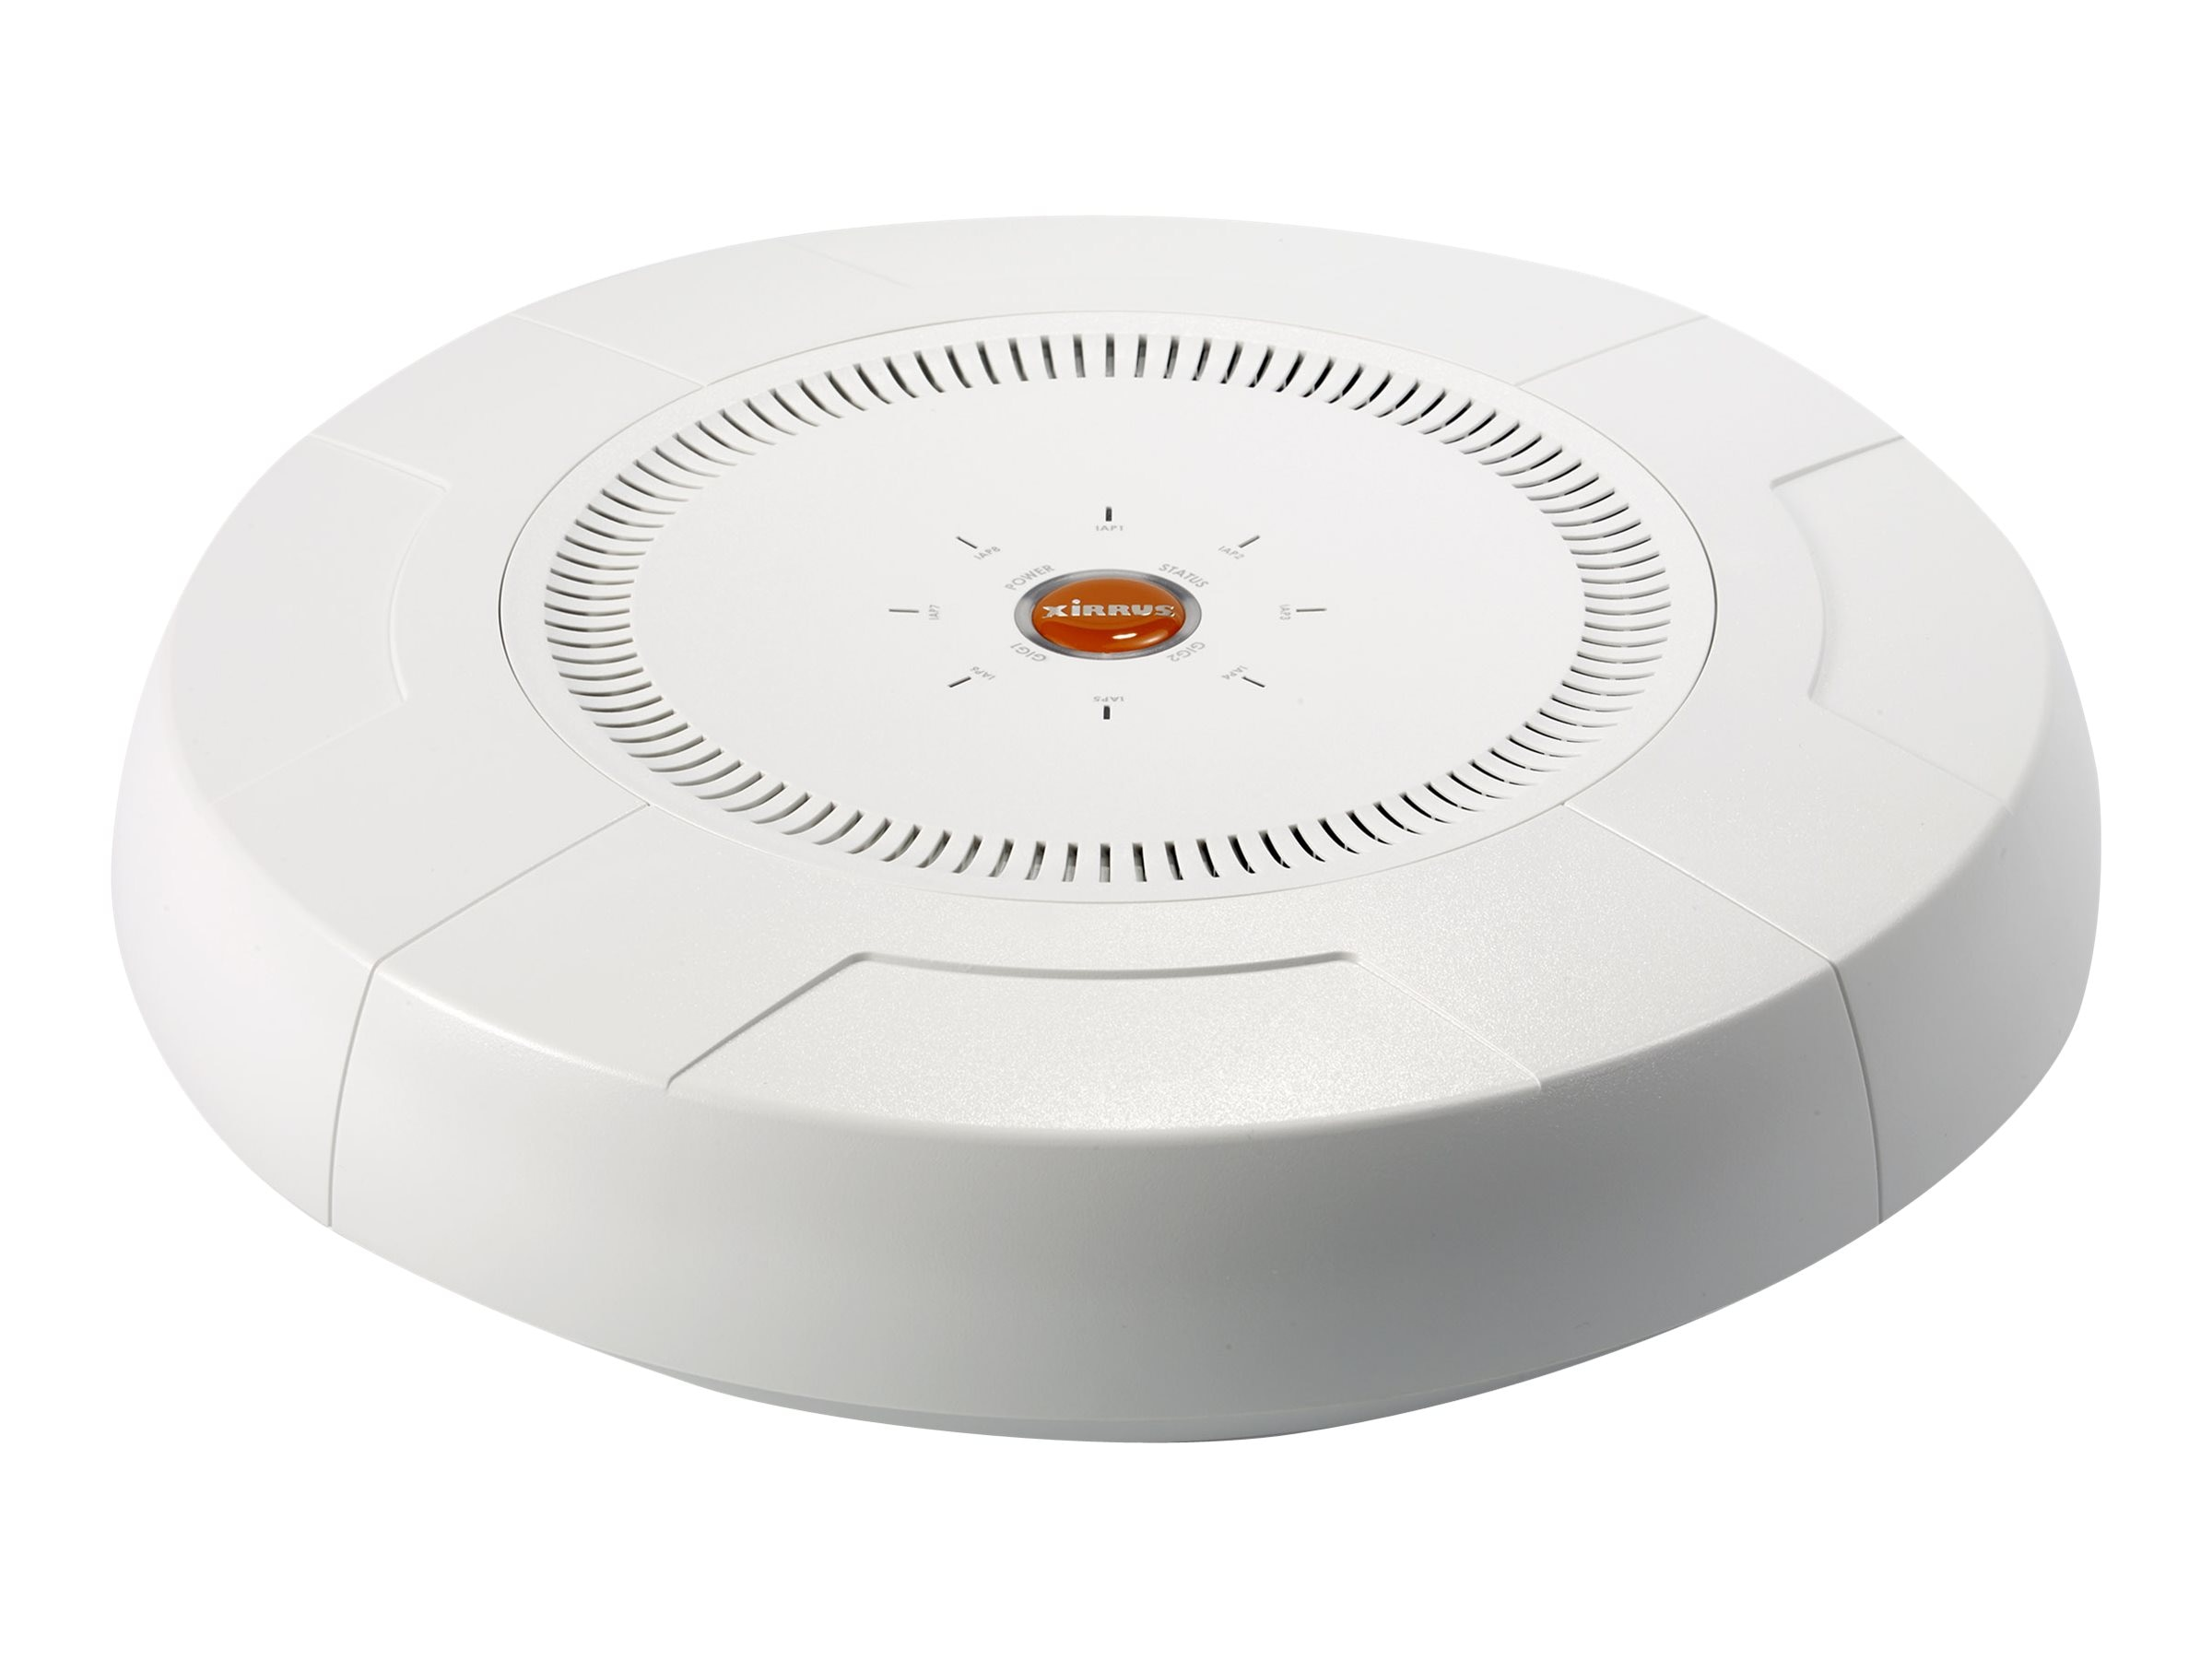 Xirrus XR Array w  41.3Gbps 802.11ac, XR-4436, 17995745, Wireless Access Points & Bridges